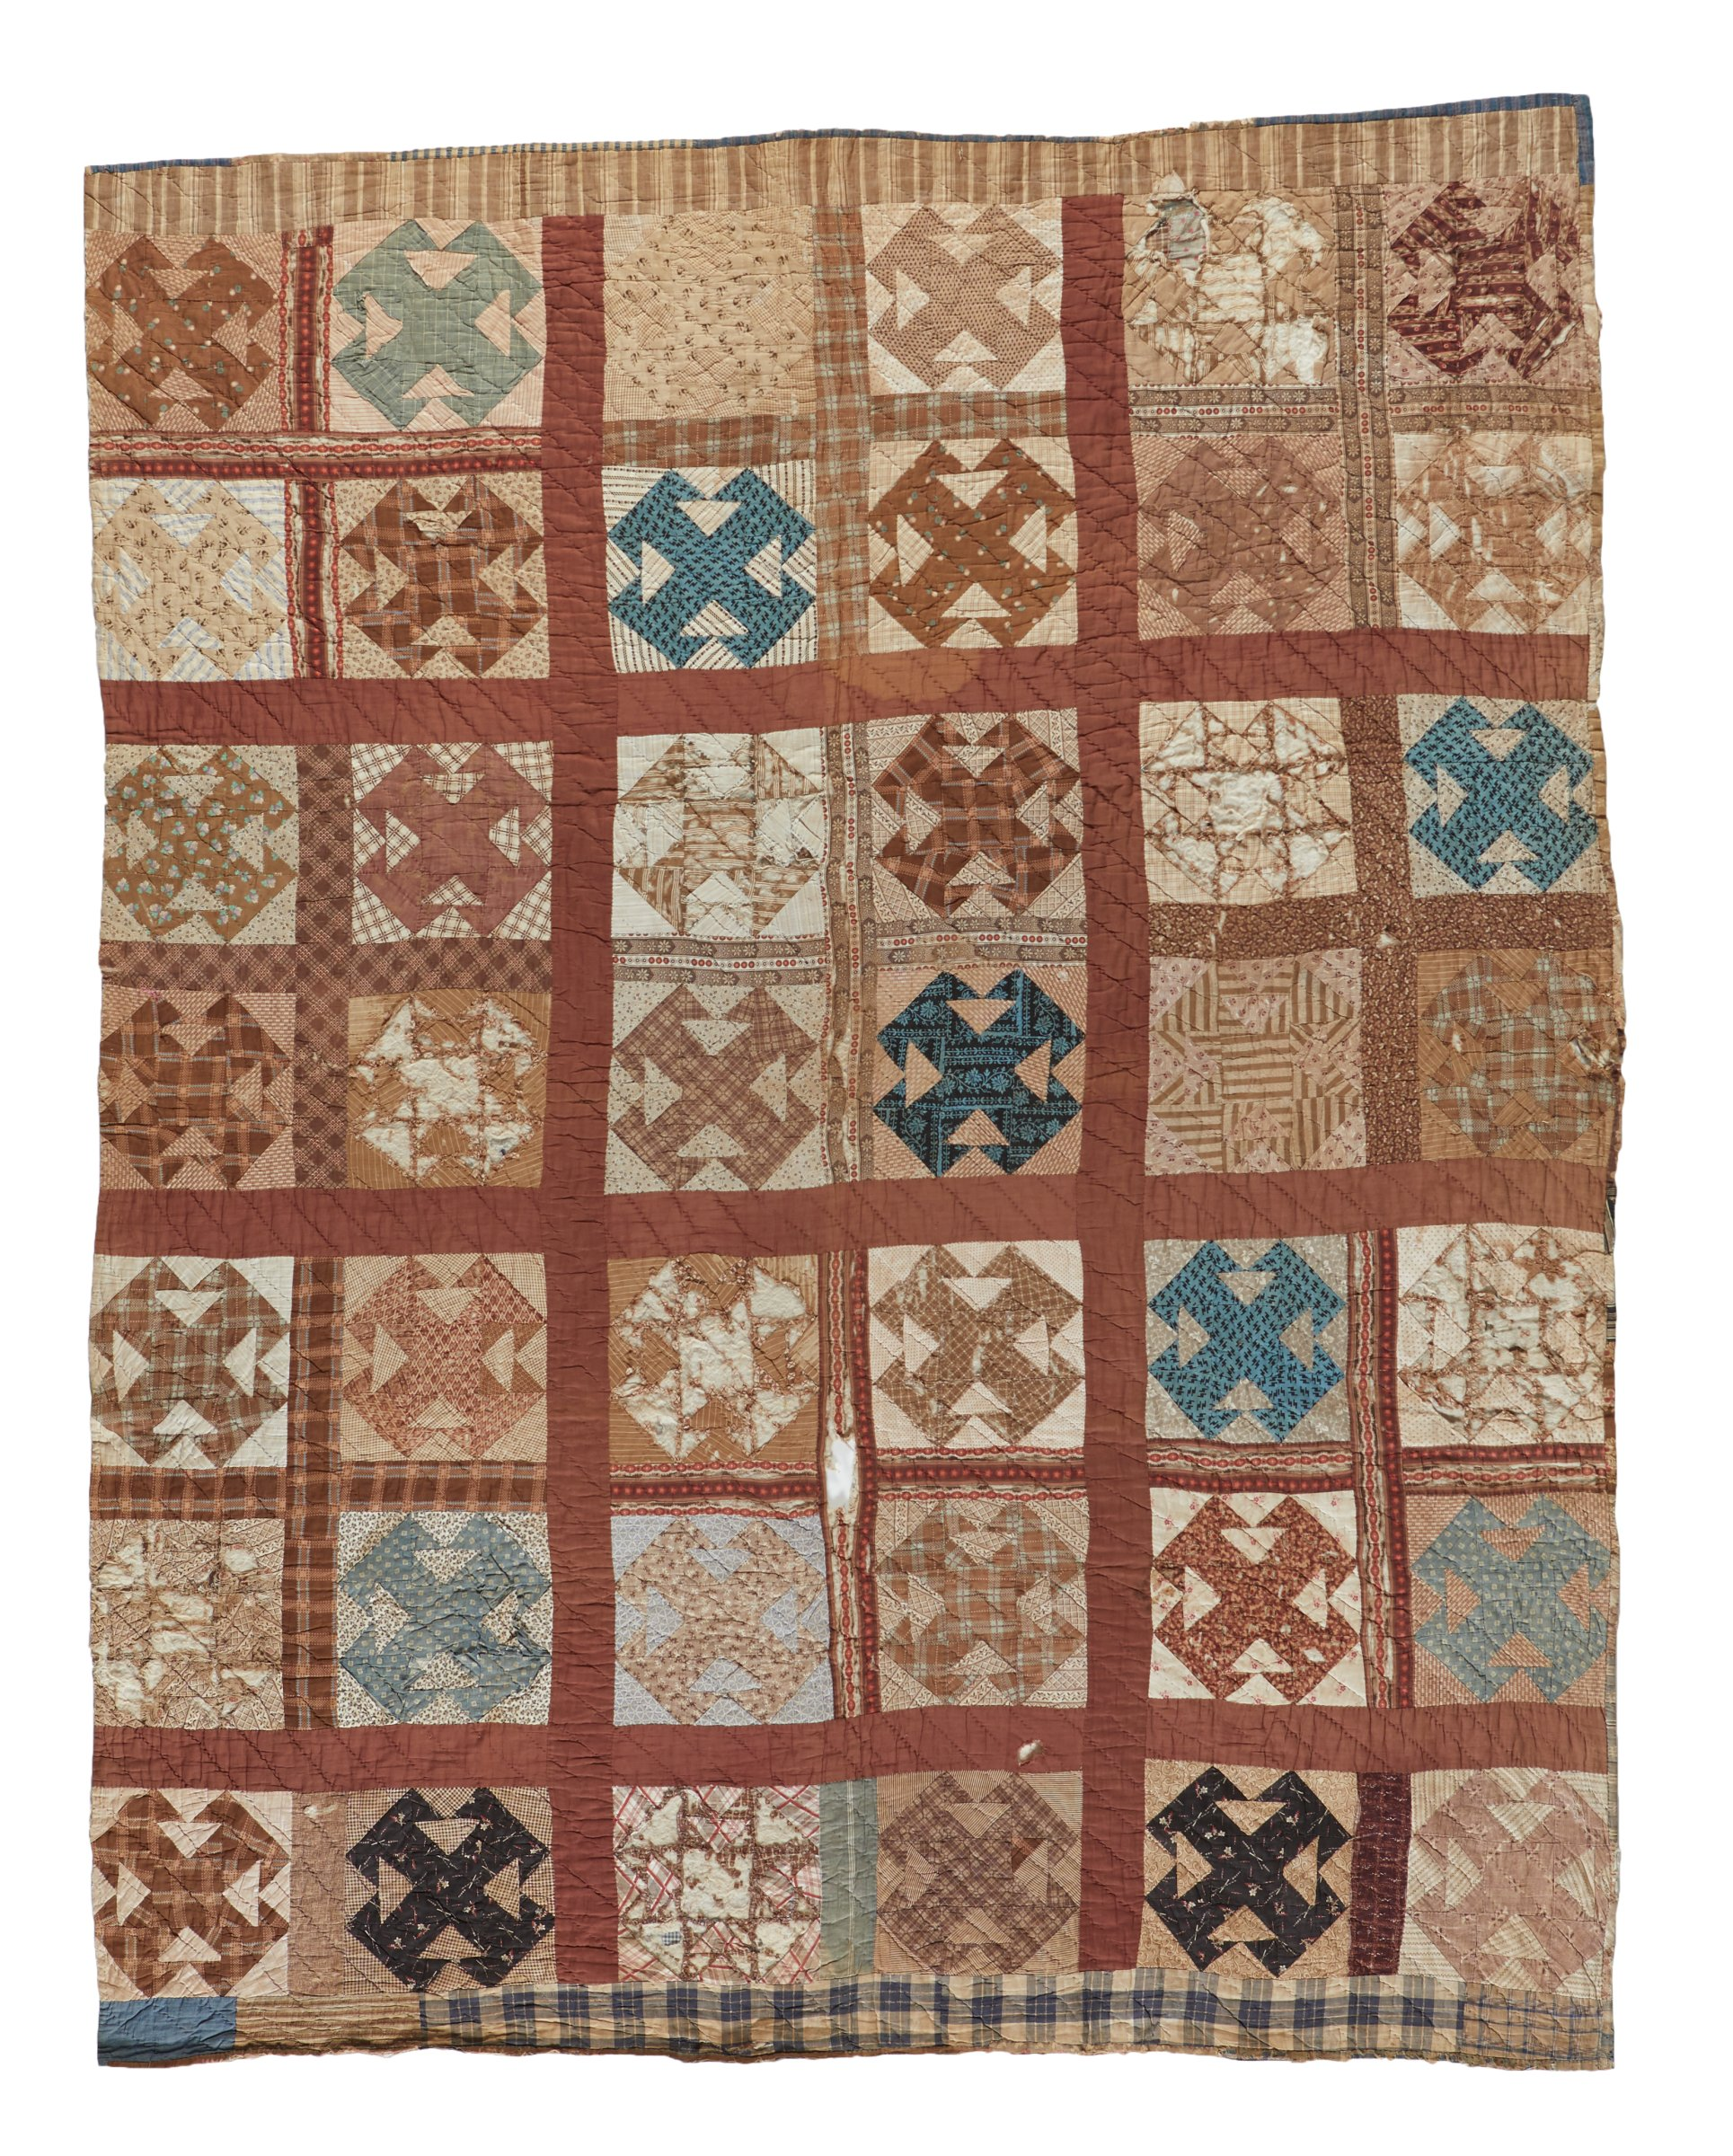 """Double sided quilt of old printed and plain woven cotton fabrics, on one side the """"Four Ts"""" pattern comprised of a grid of squares each with a pattern of four Ts that connect at the base of each letter, in floral and geometric-patterned fabrics along with plaids and leafy designs; the other side in the """"Sampler"""" pattern with a grid of squares each with a different pattern inside in seersucker, gingham and stripes in shades of blues, reds and browns, along with polka dots, paisley and lots of plaids, the edging partially missing."""